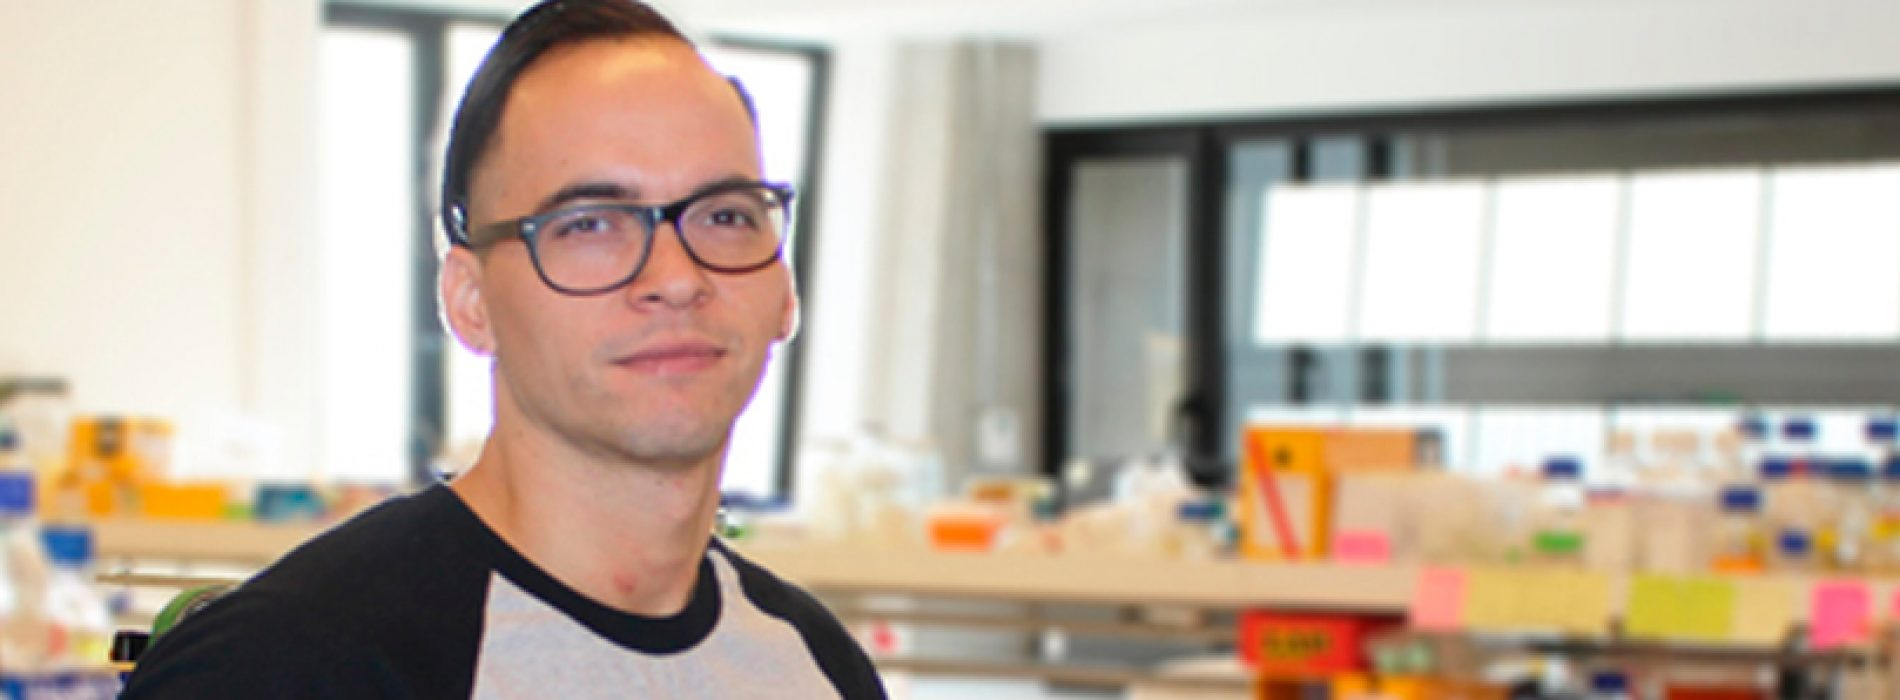 Article by César A. Ramírez-Sarmiento, partner of SBBMCH, was awarded as the article of the year in the journal Biophysical Journal